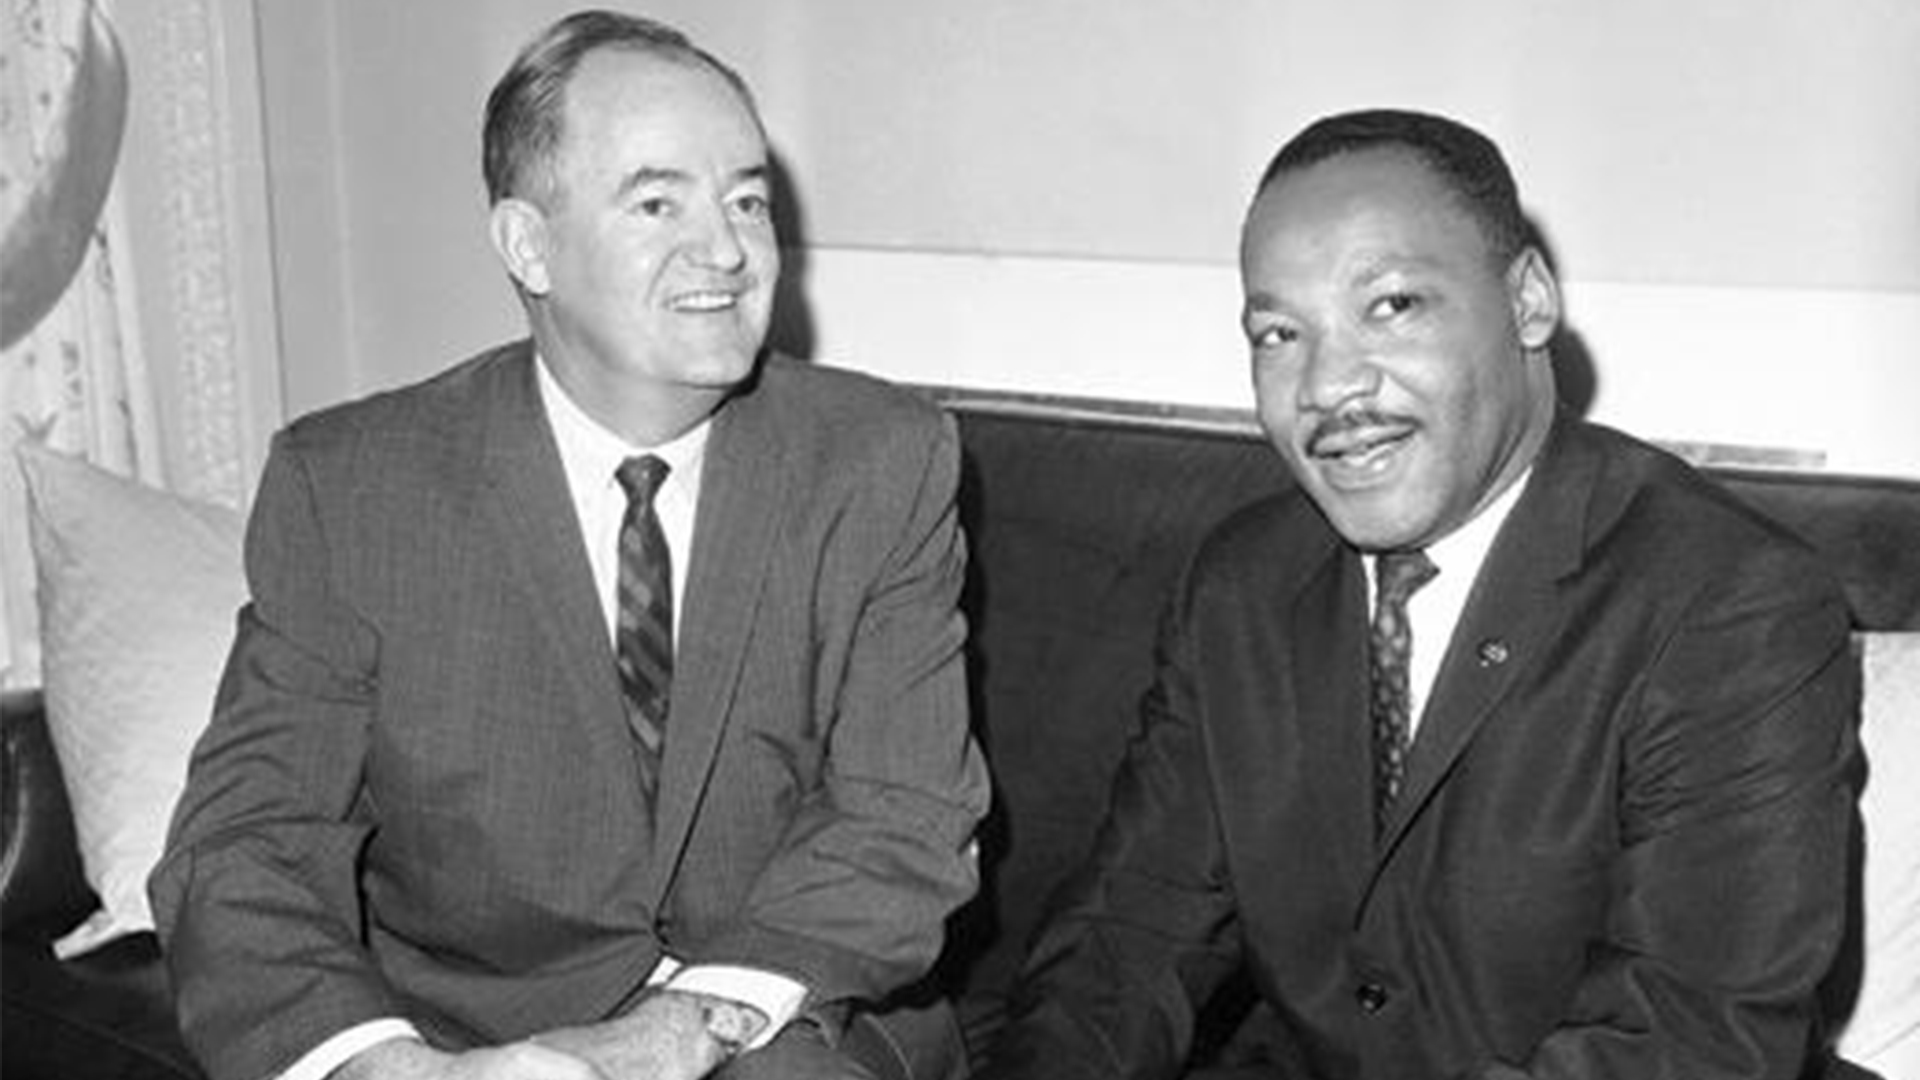 Hubert H. Humphrey and Martin Luther King Jr. sit together and smile at someone off-camera